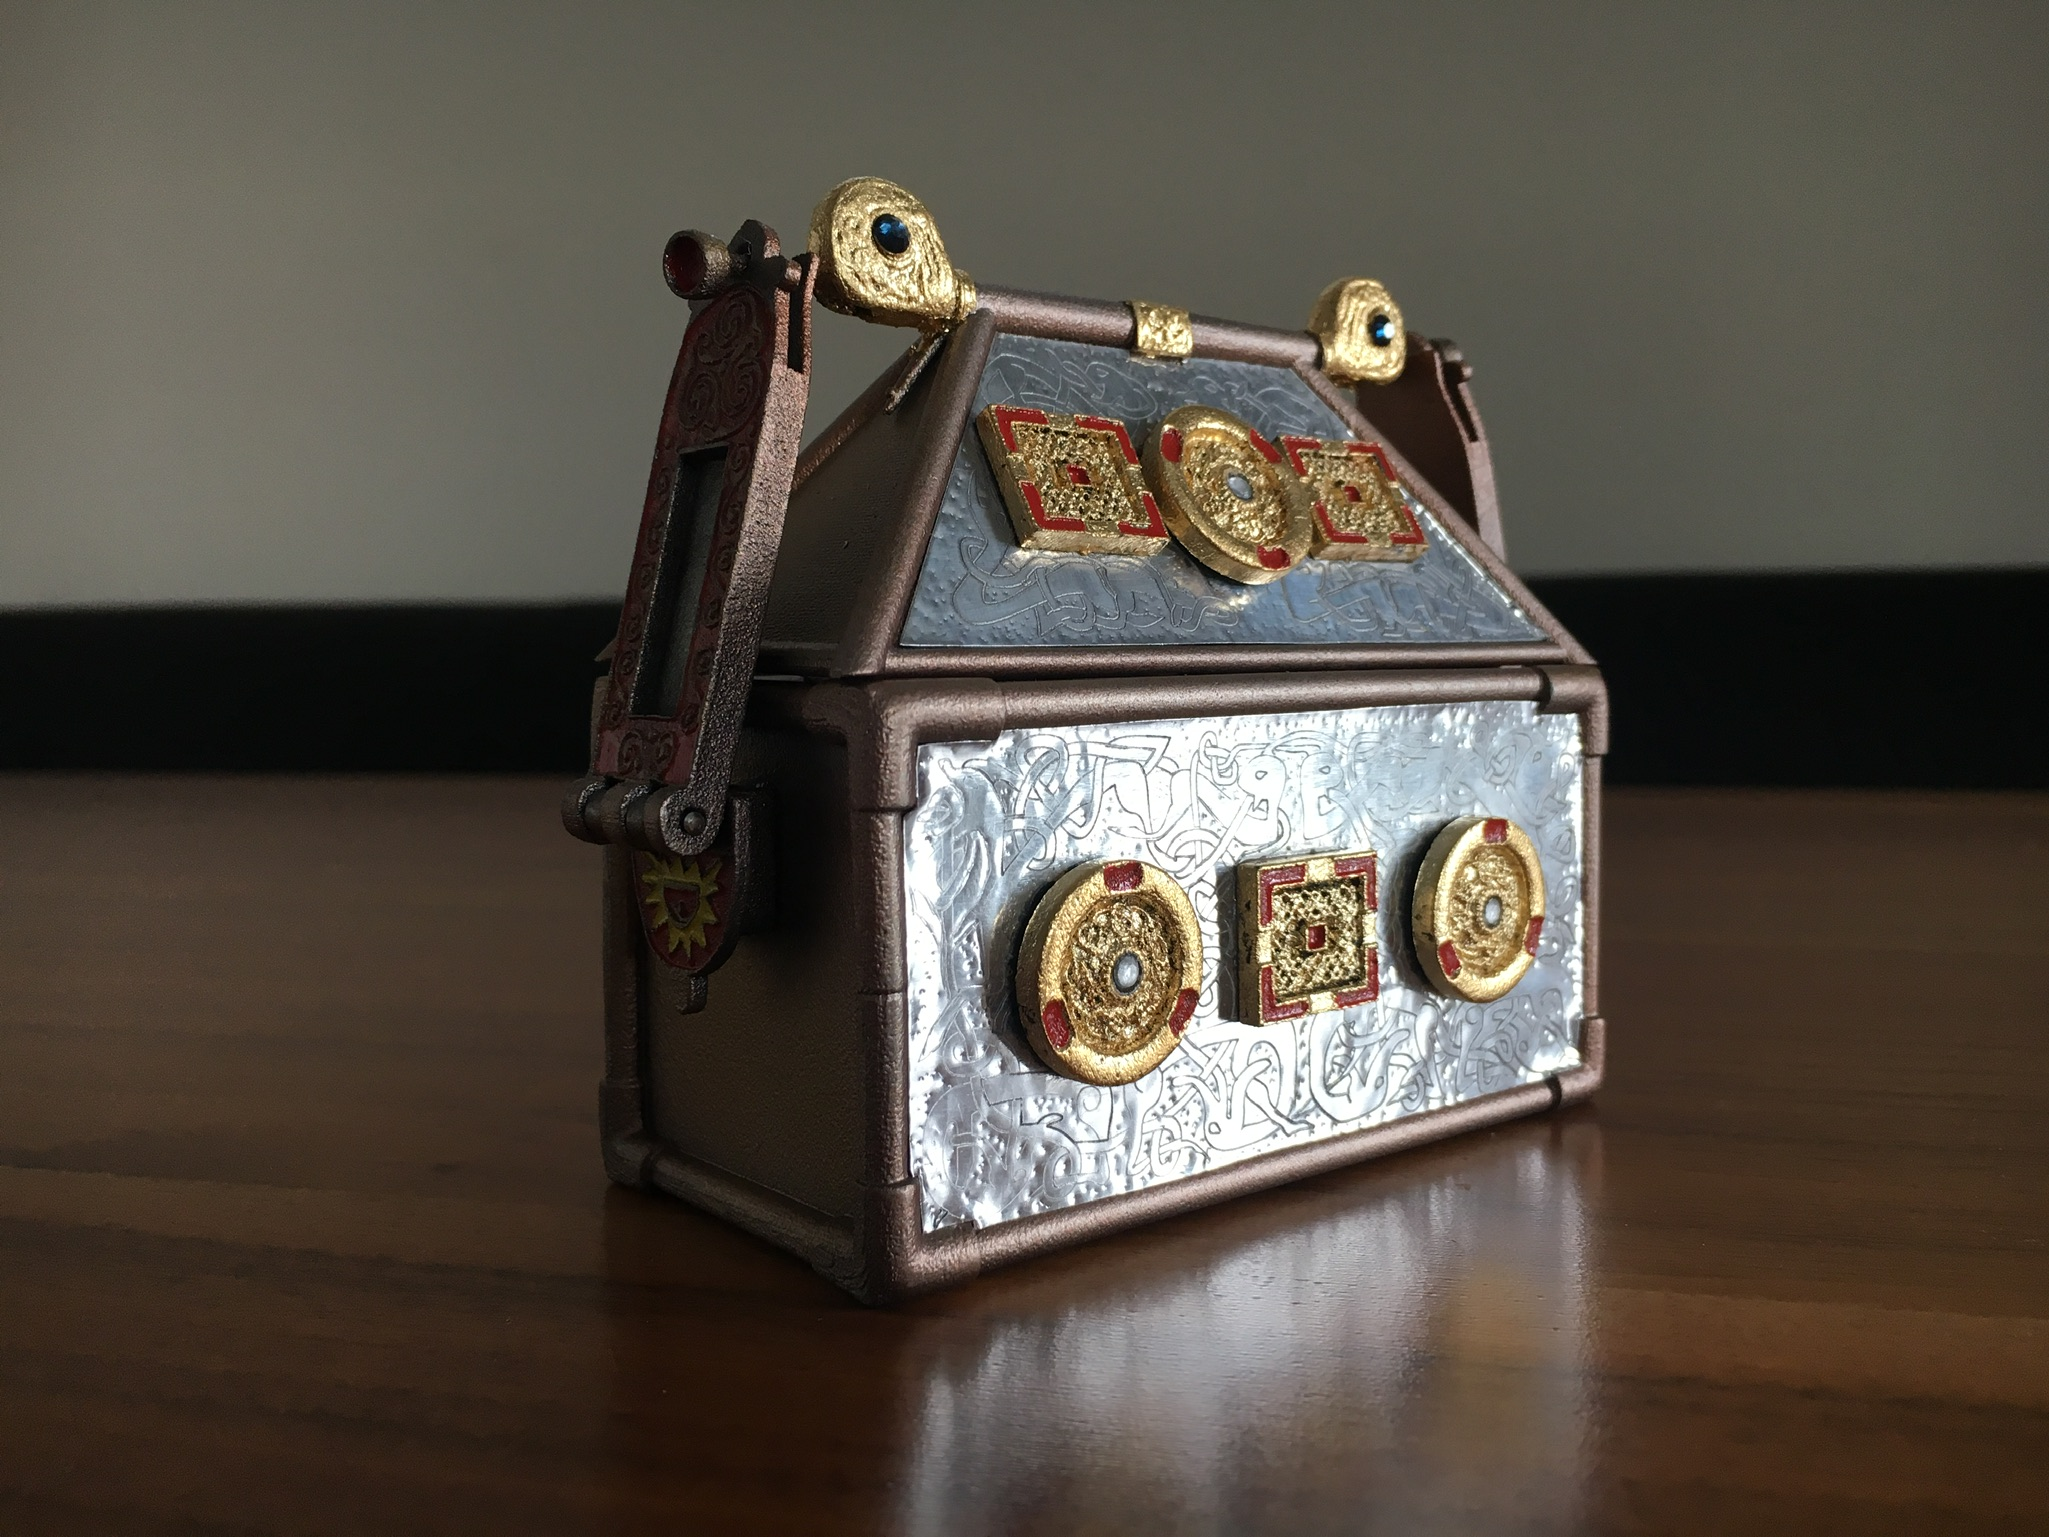 Replica Monymusk Reliquary reflections